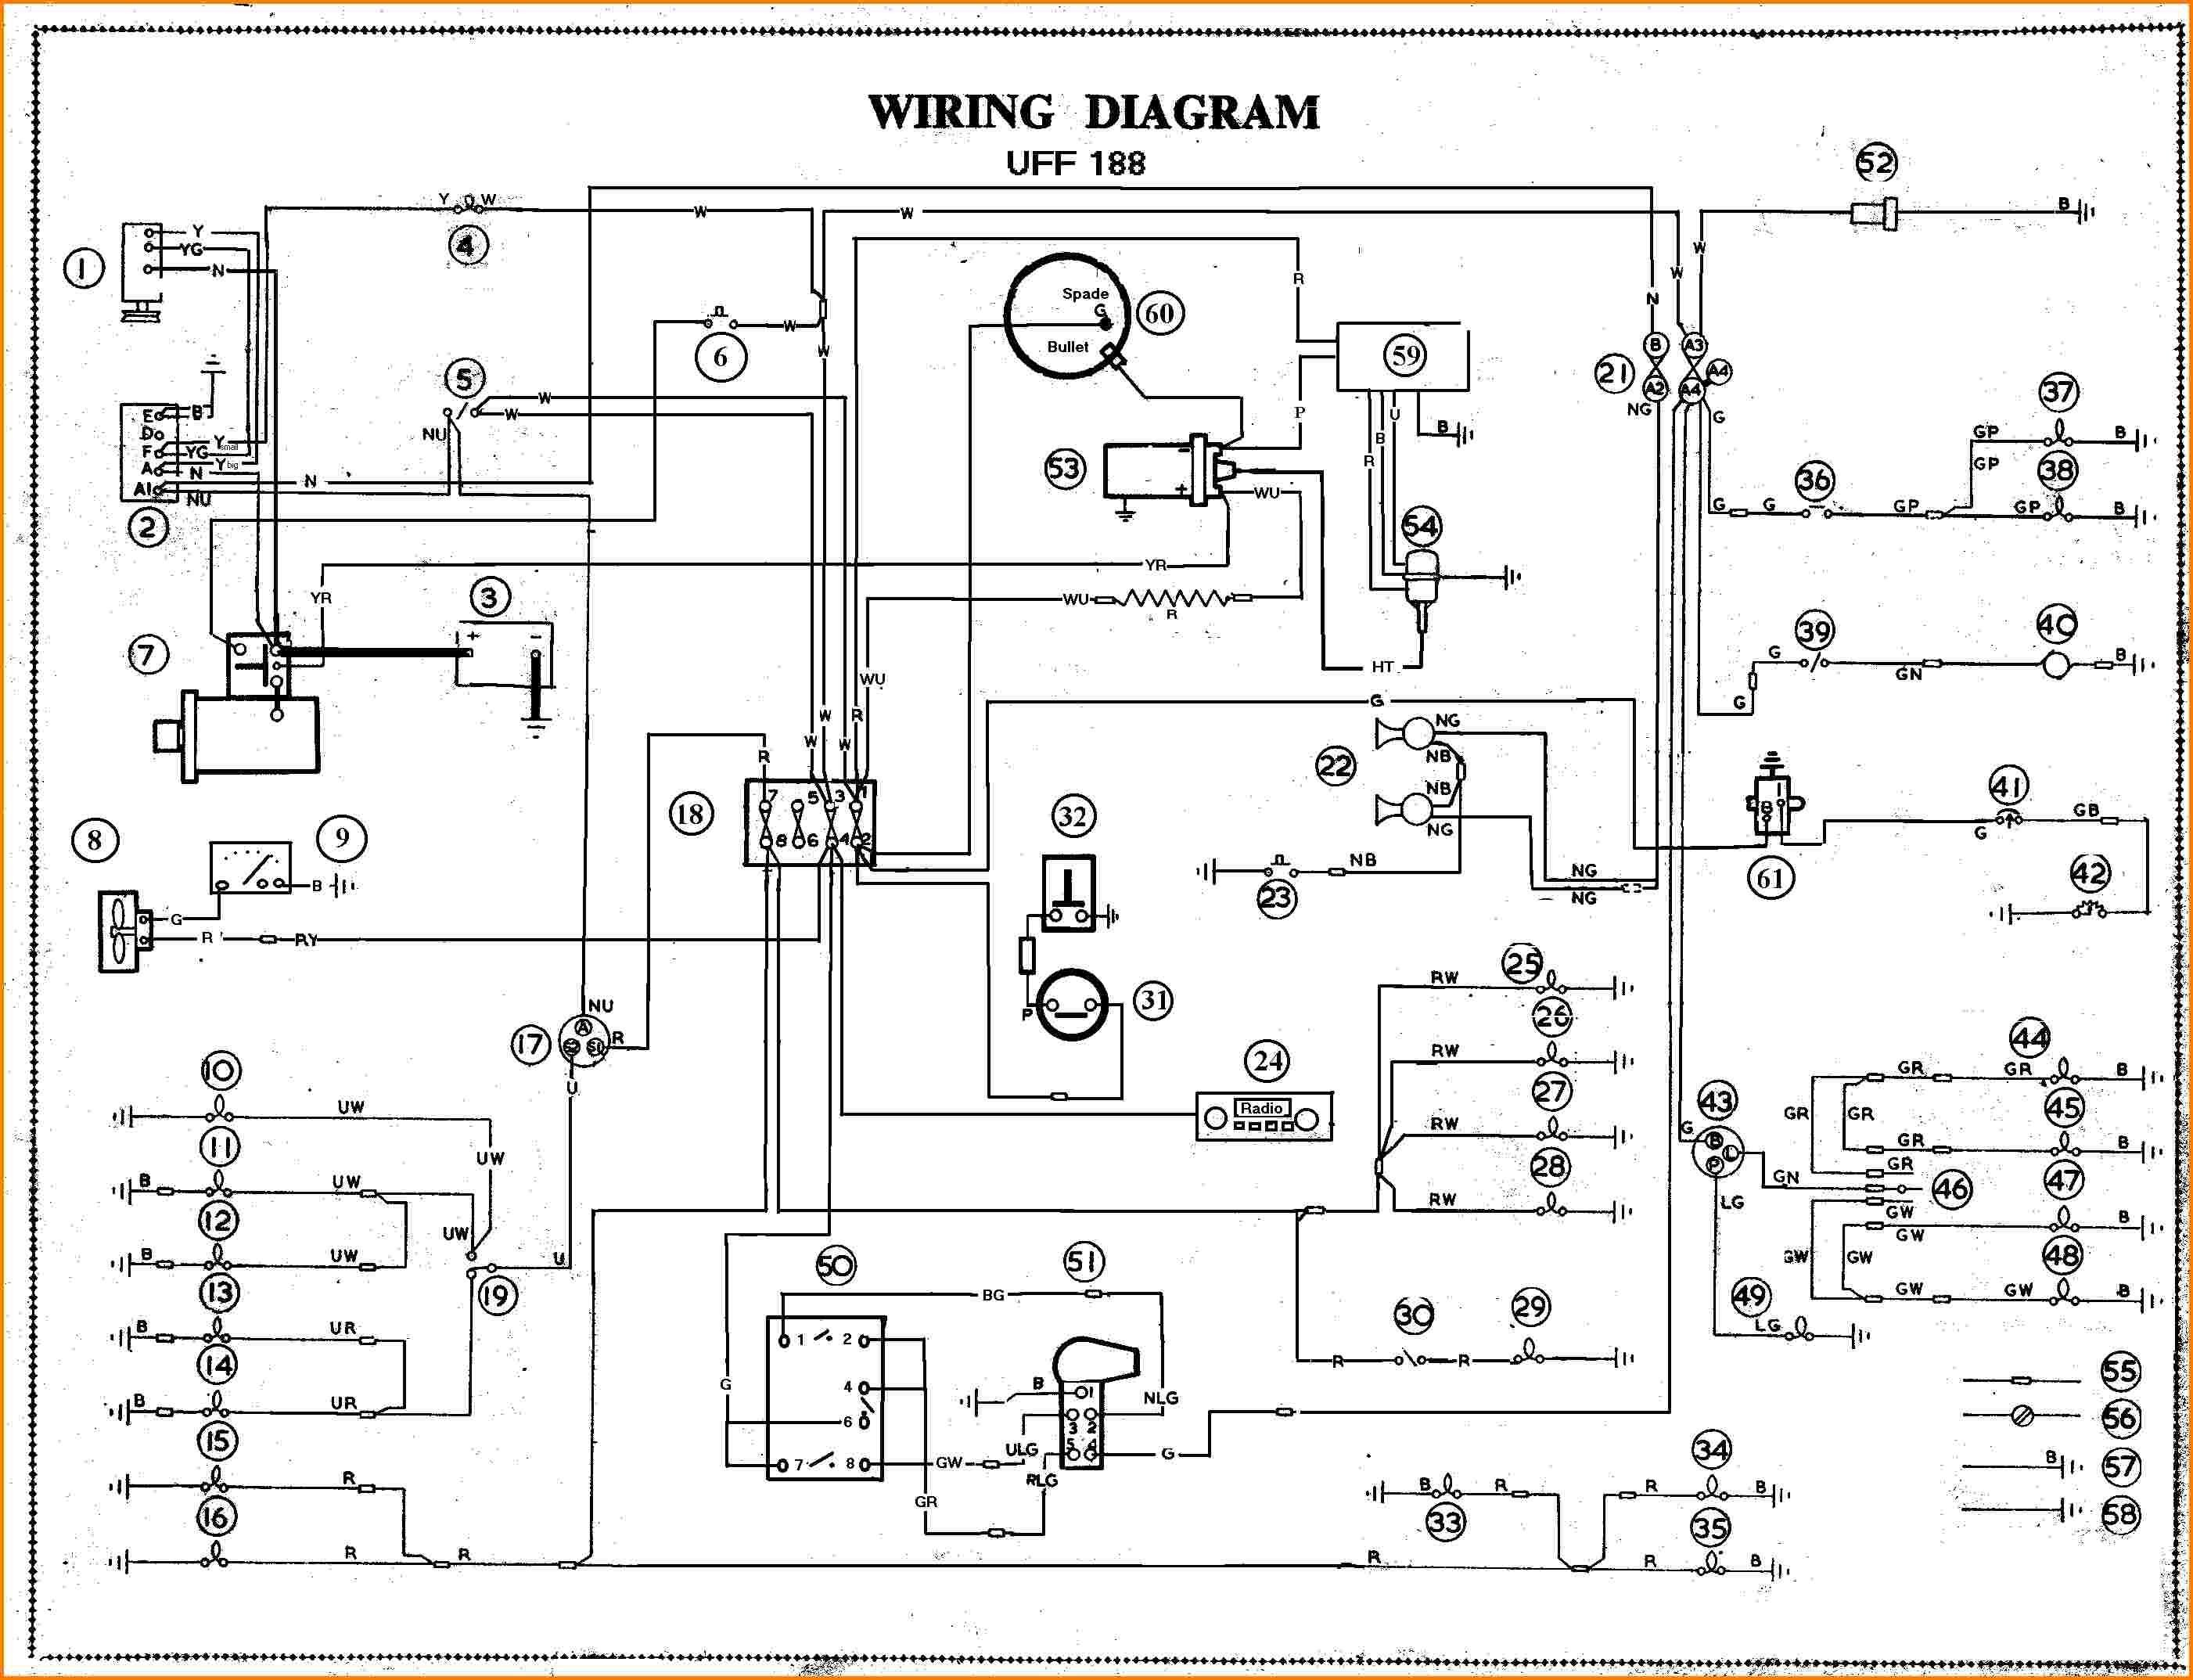 understanding automotive wiring schematics free download wiring rh daniablub co wiring diagrams 4 cars online wiring diagrams for cars